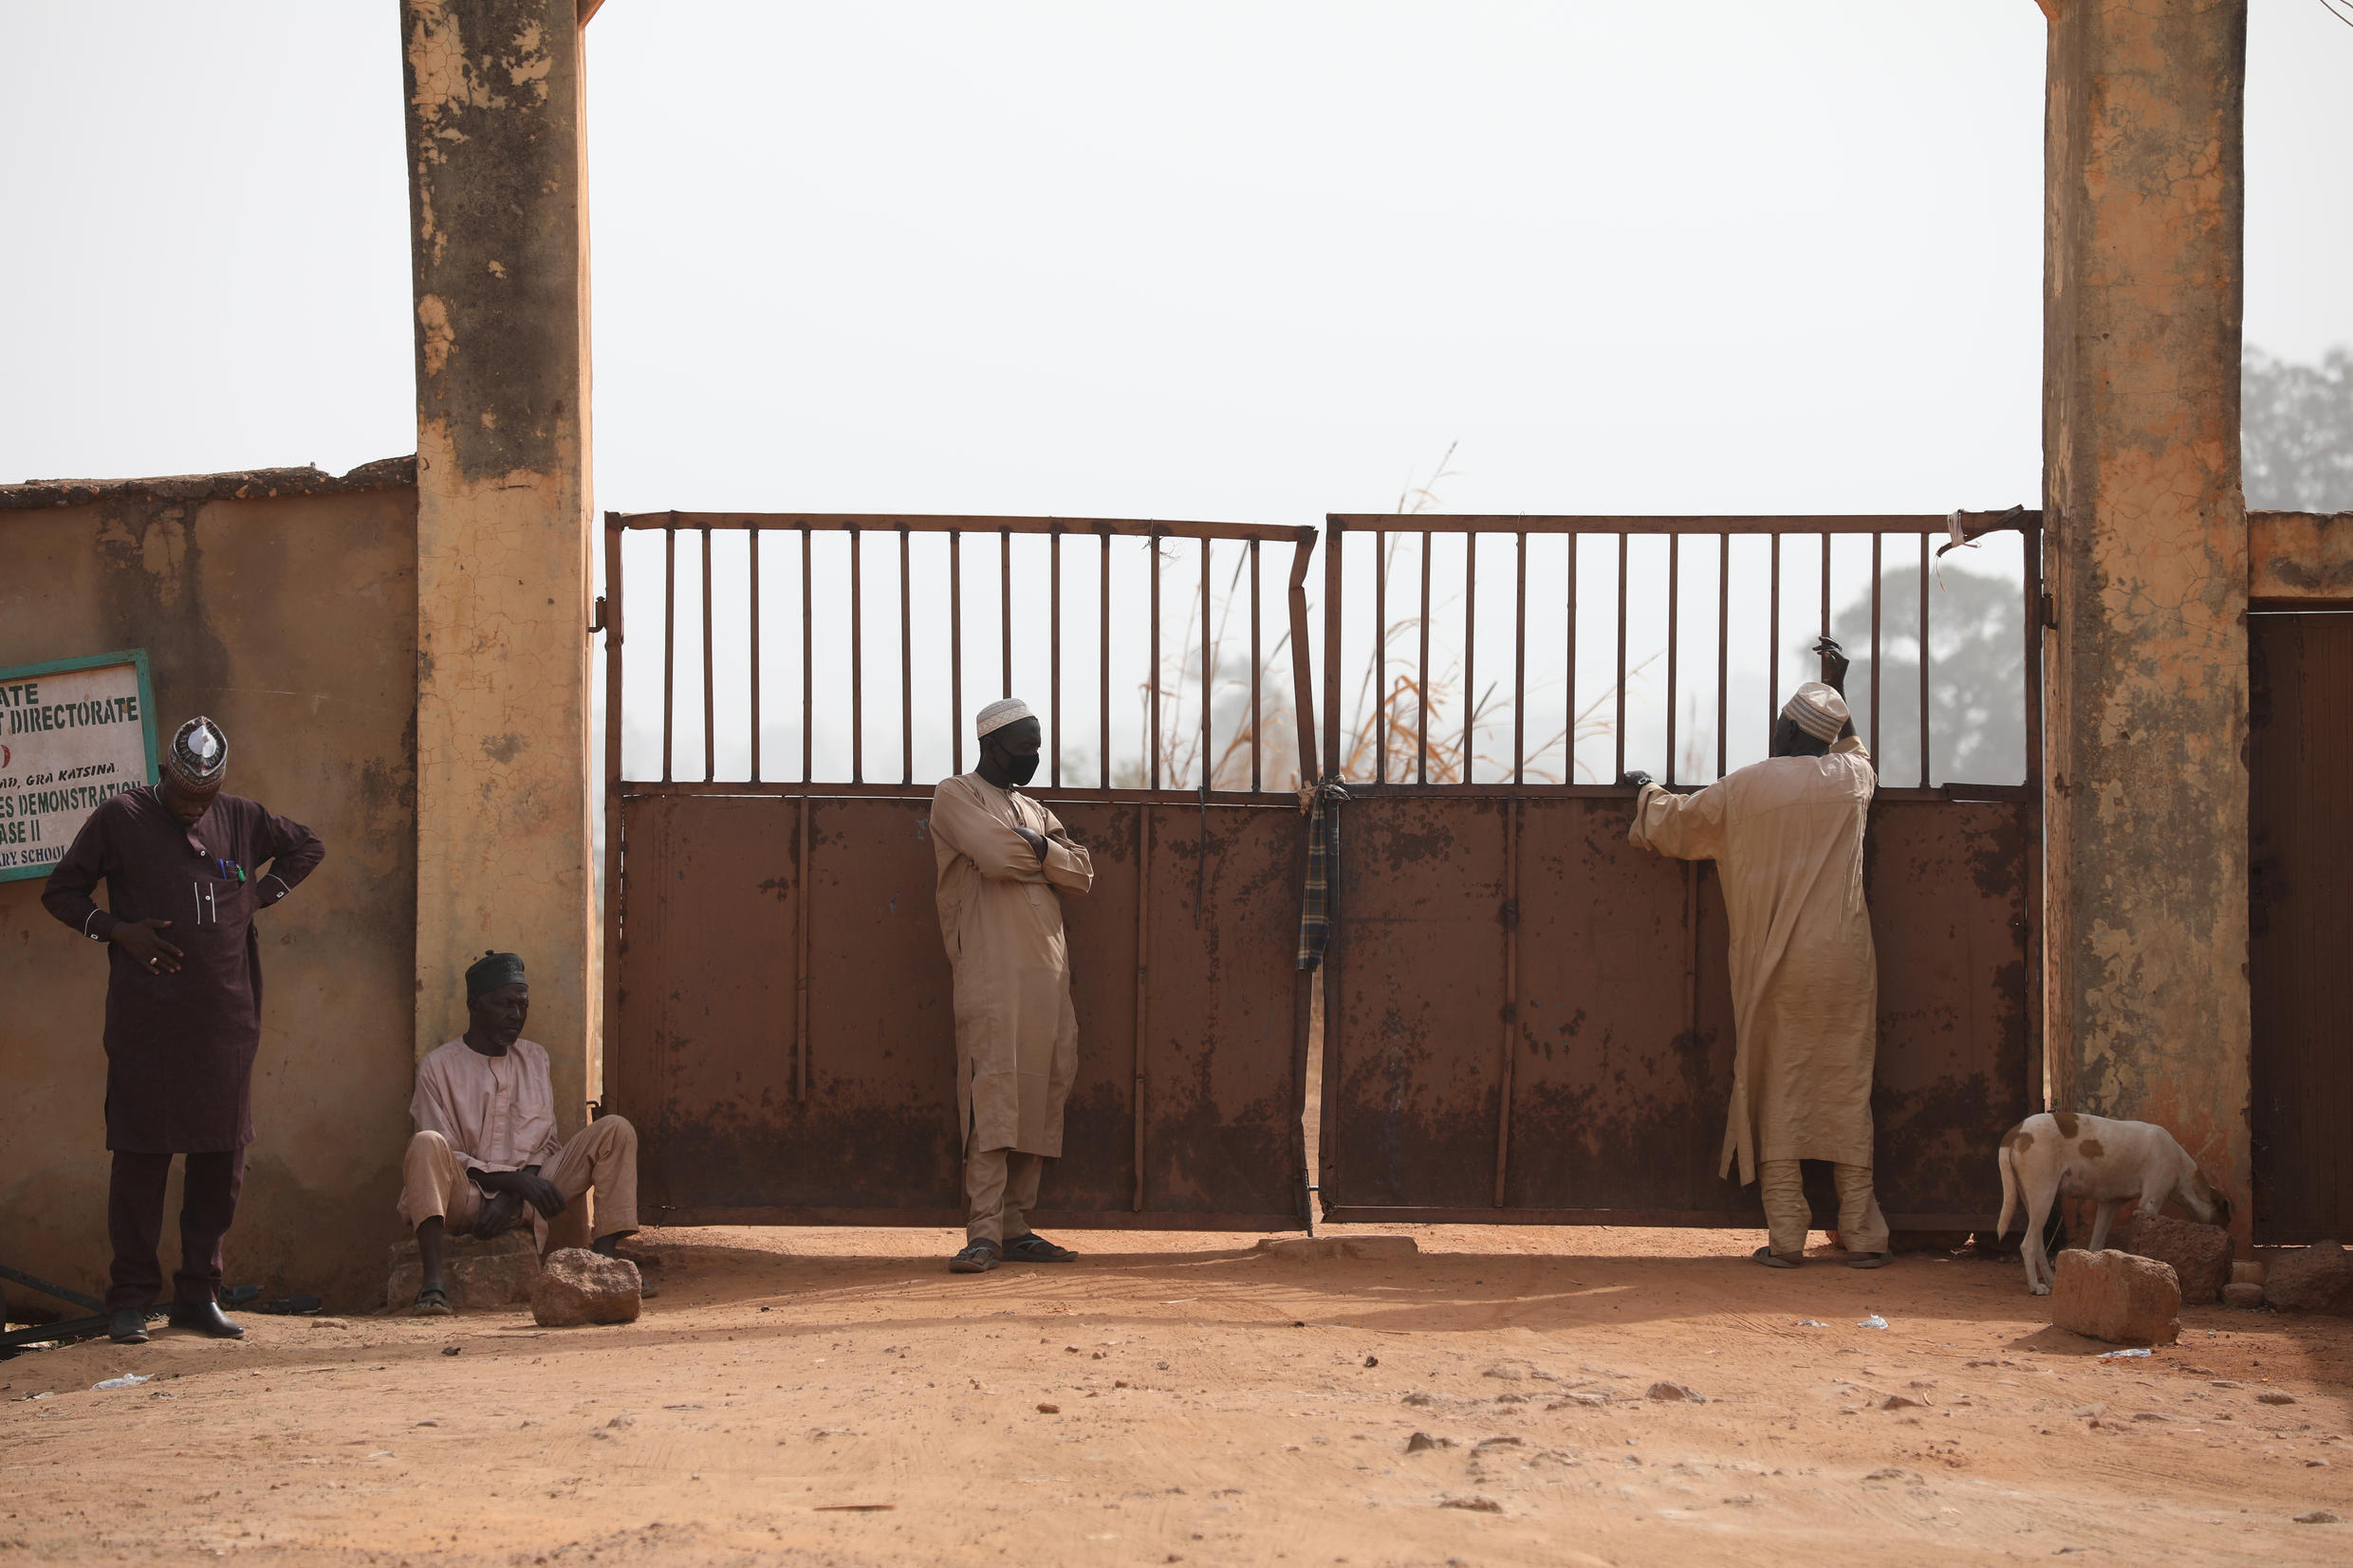 Parents wait outside the Government Science Secondary School in Kankara, in northwest Nigeria on December 16, 2020. Boko Haram claimed the abduction of hundreds of schoolboys from the school, more than 300 of whom have since been released